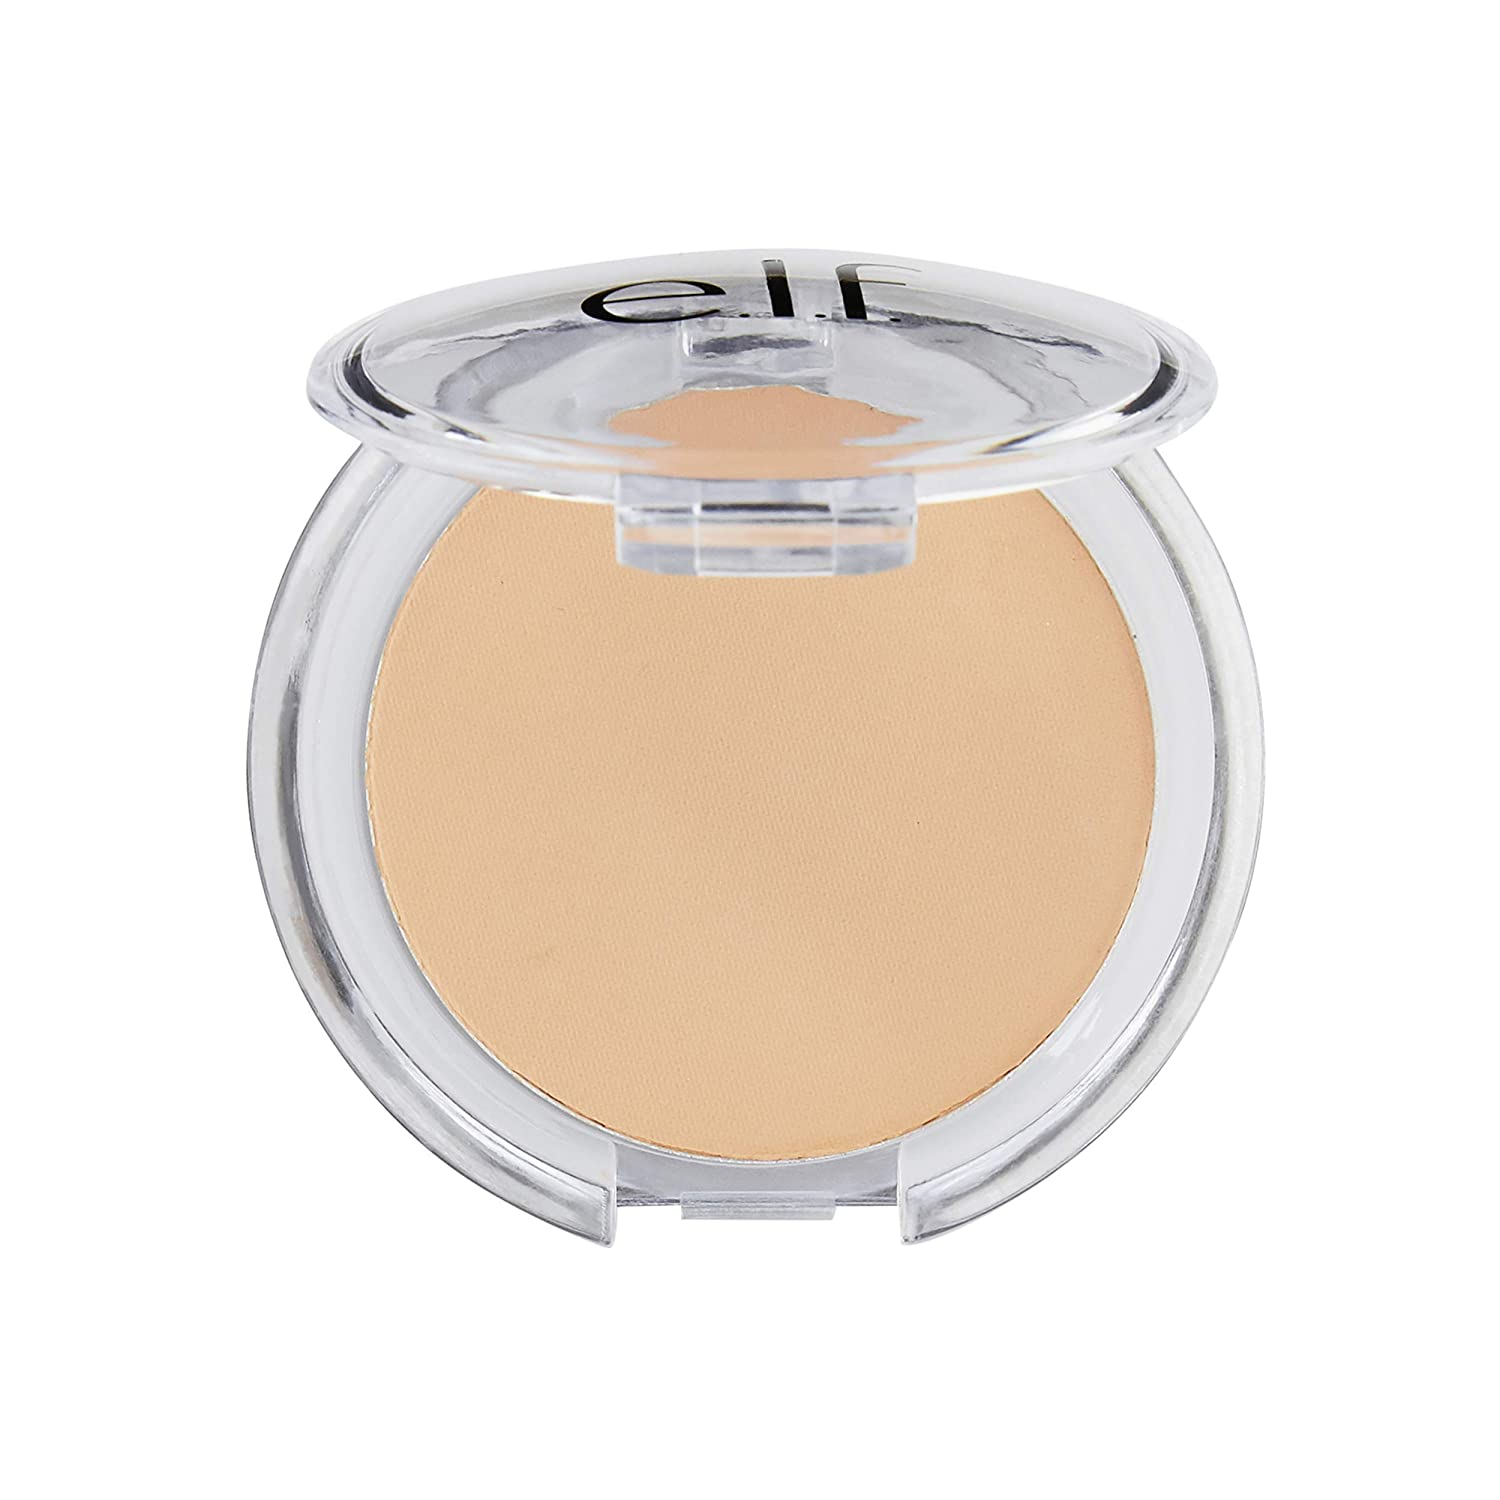 e.l.f. Prime & Stay Finishing Powder, Light/Medium, 0.17 oz.